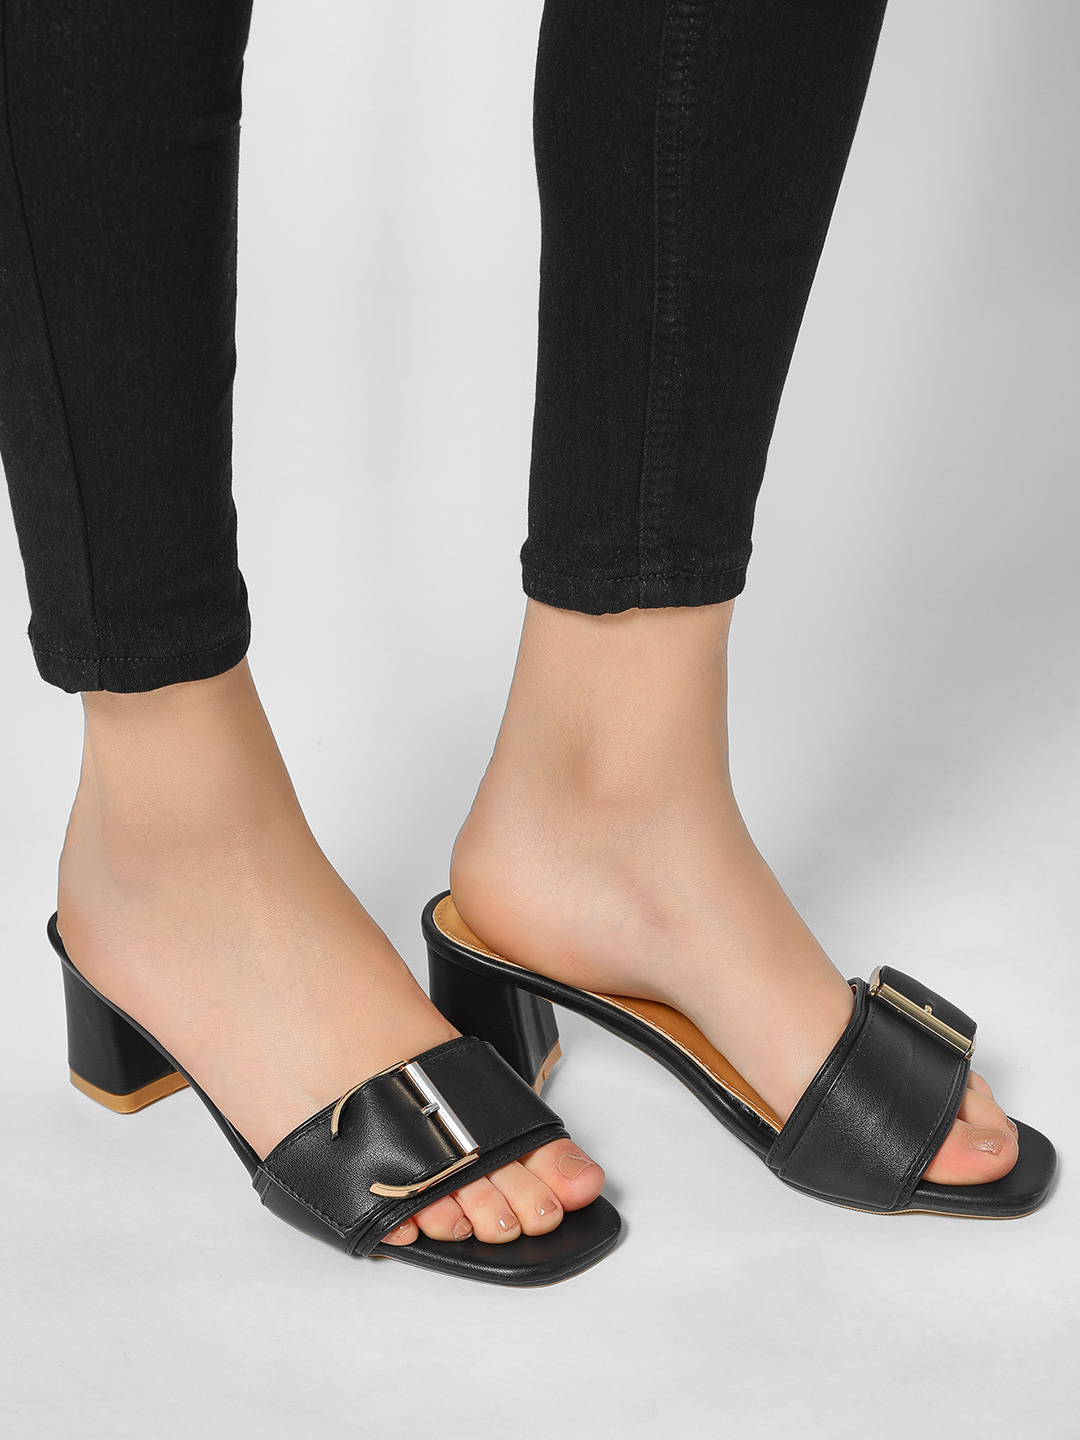 My Foot Couture Black Broad Buckle Heeled Sandals 1